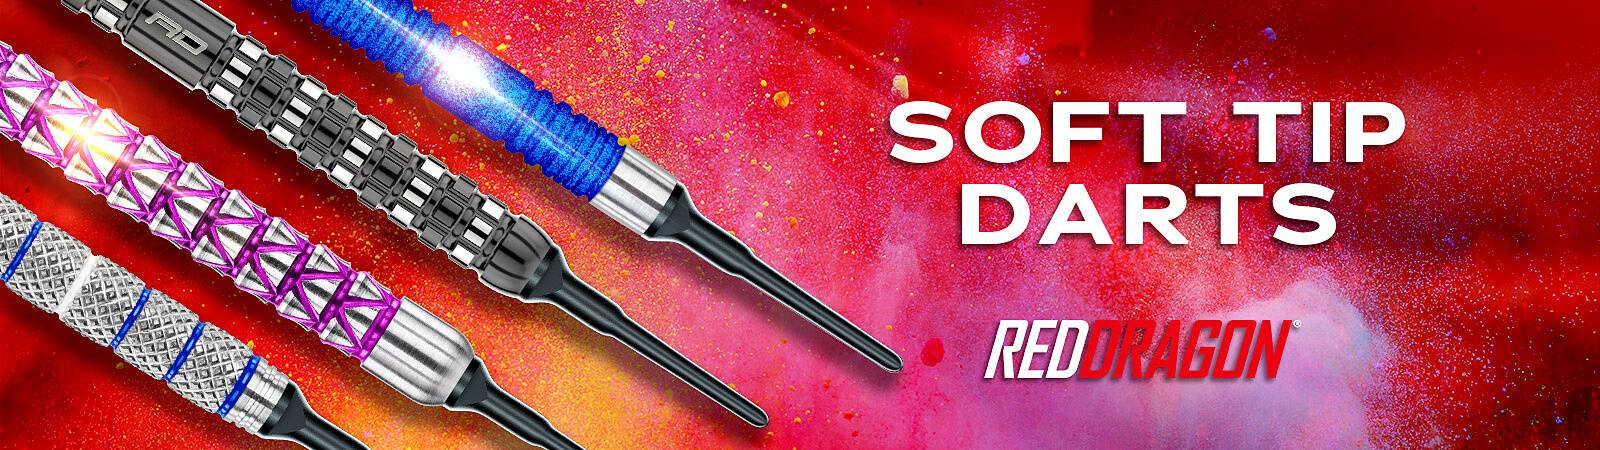 Red Dragon Softdarts